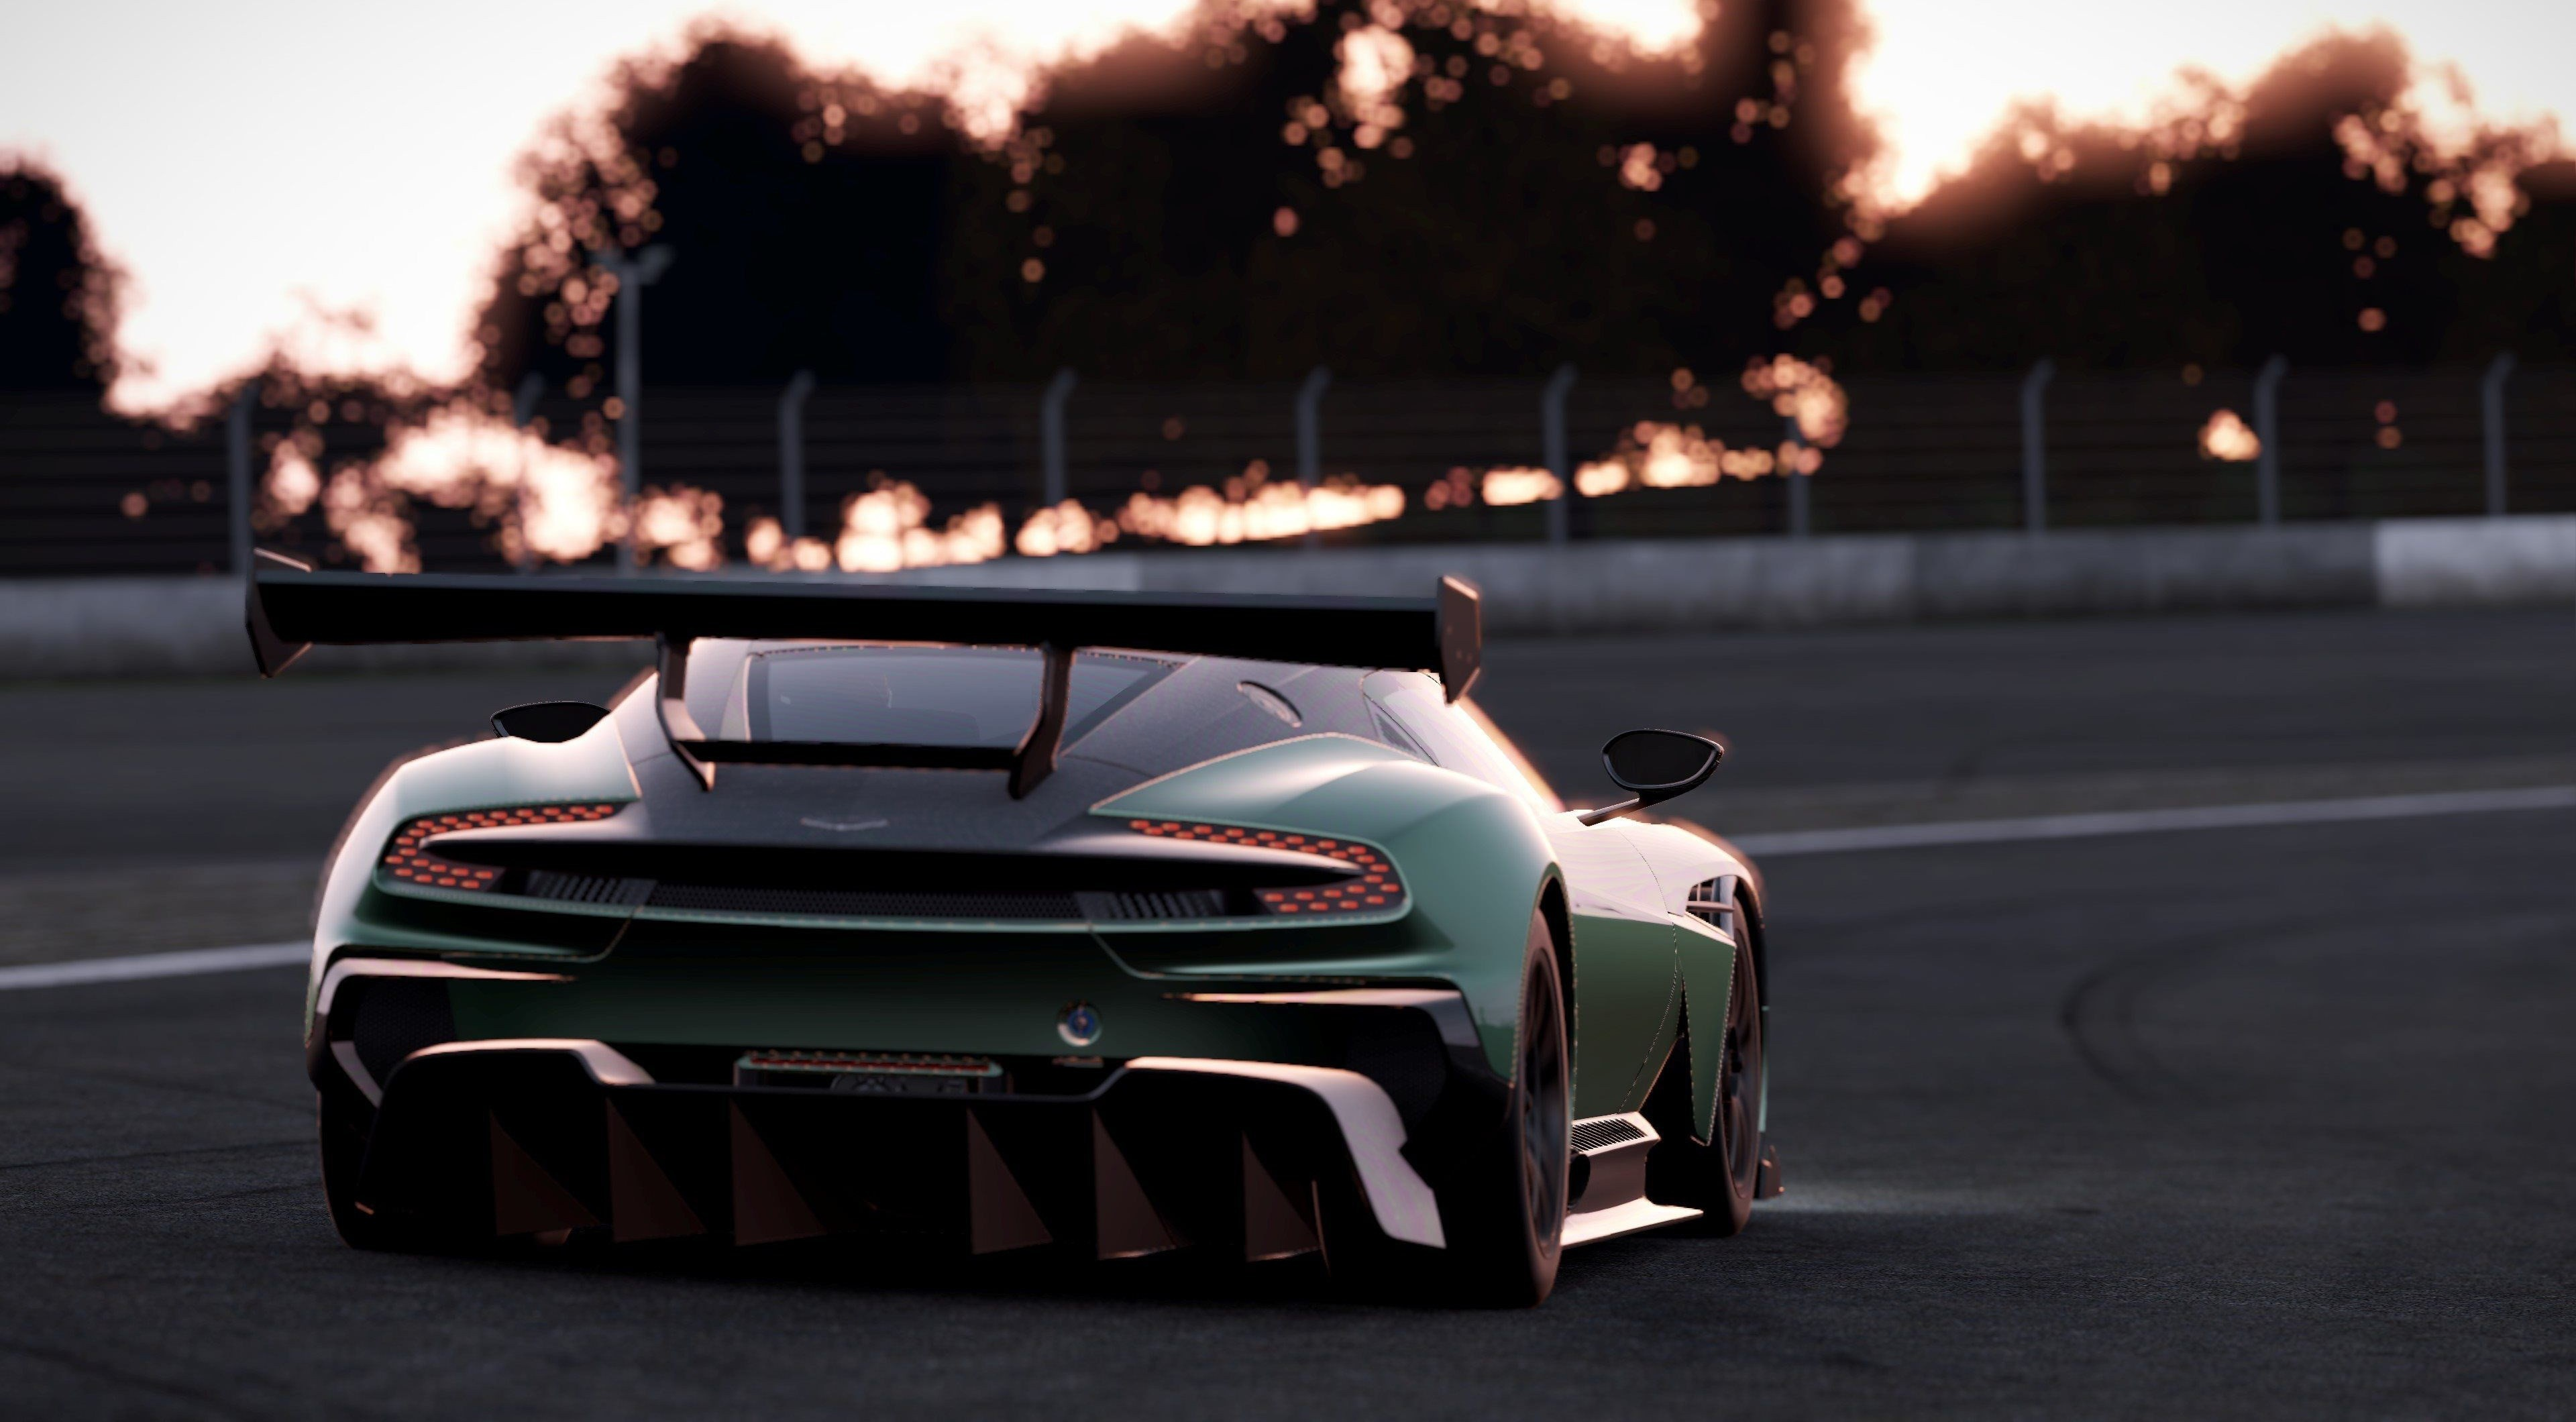 18 Forza Motorsport 7 Hd Wallpapers Background Images Wallpaper Abyss